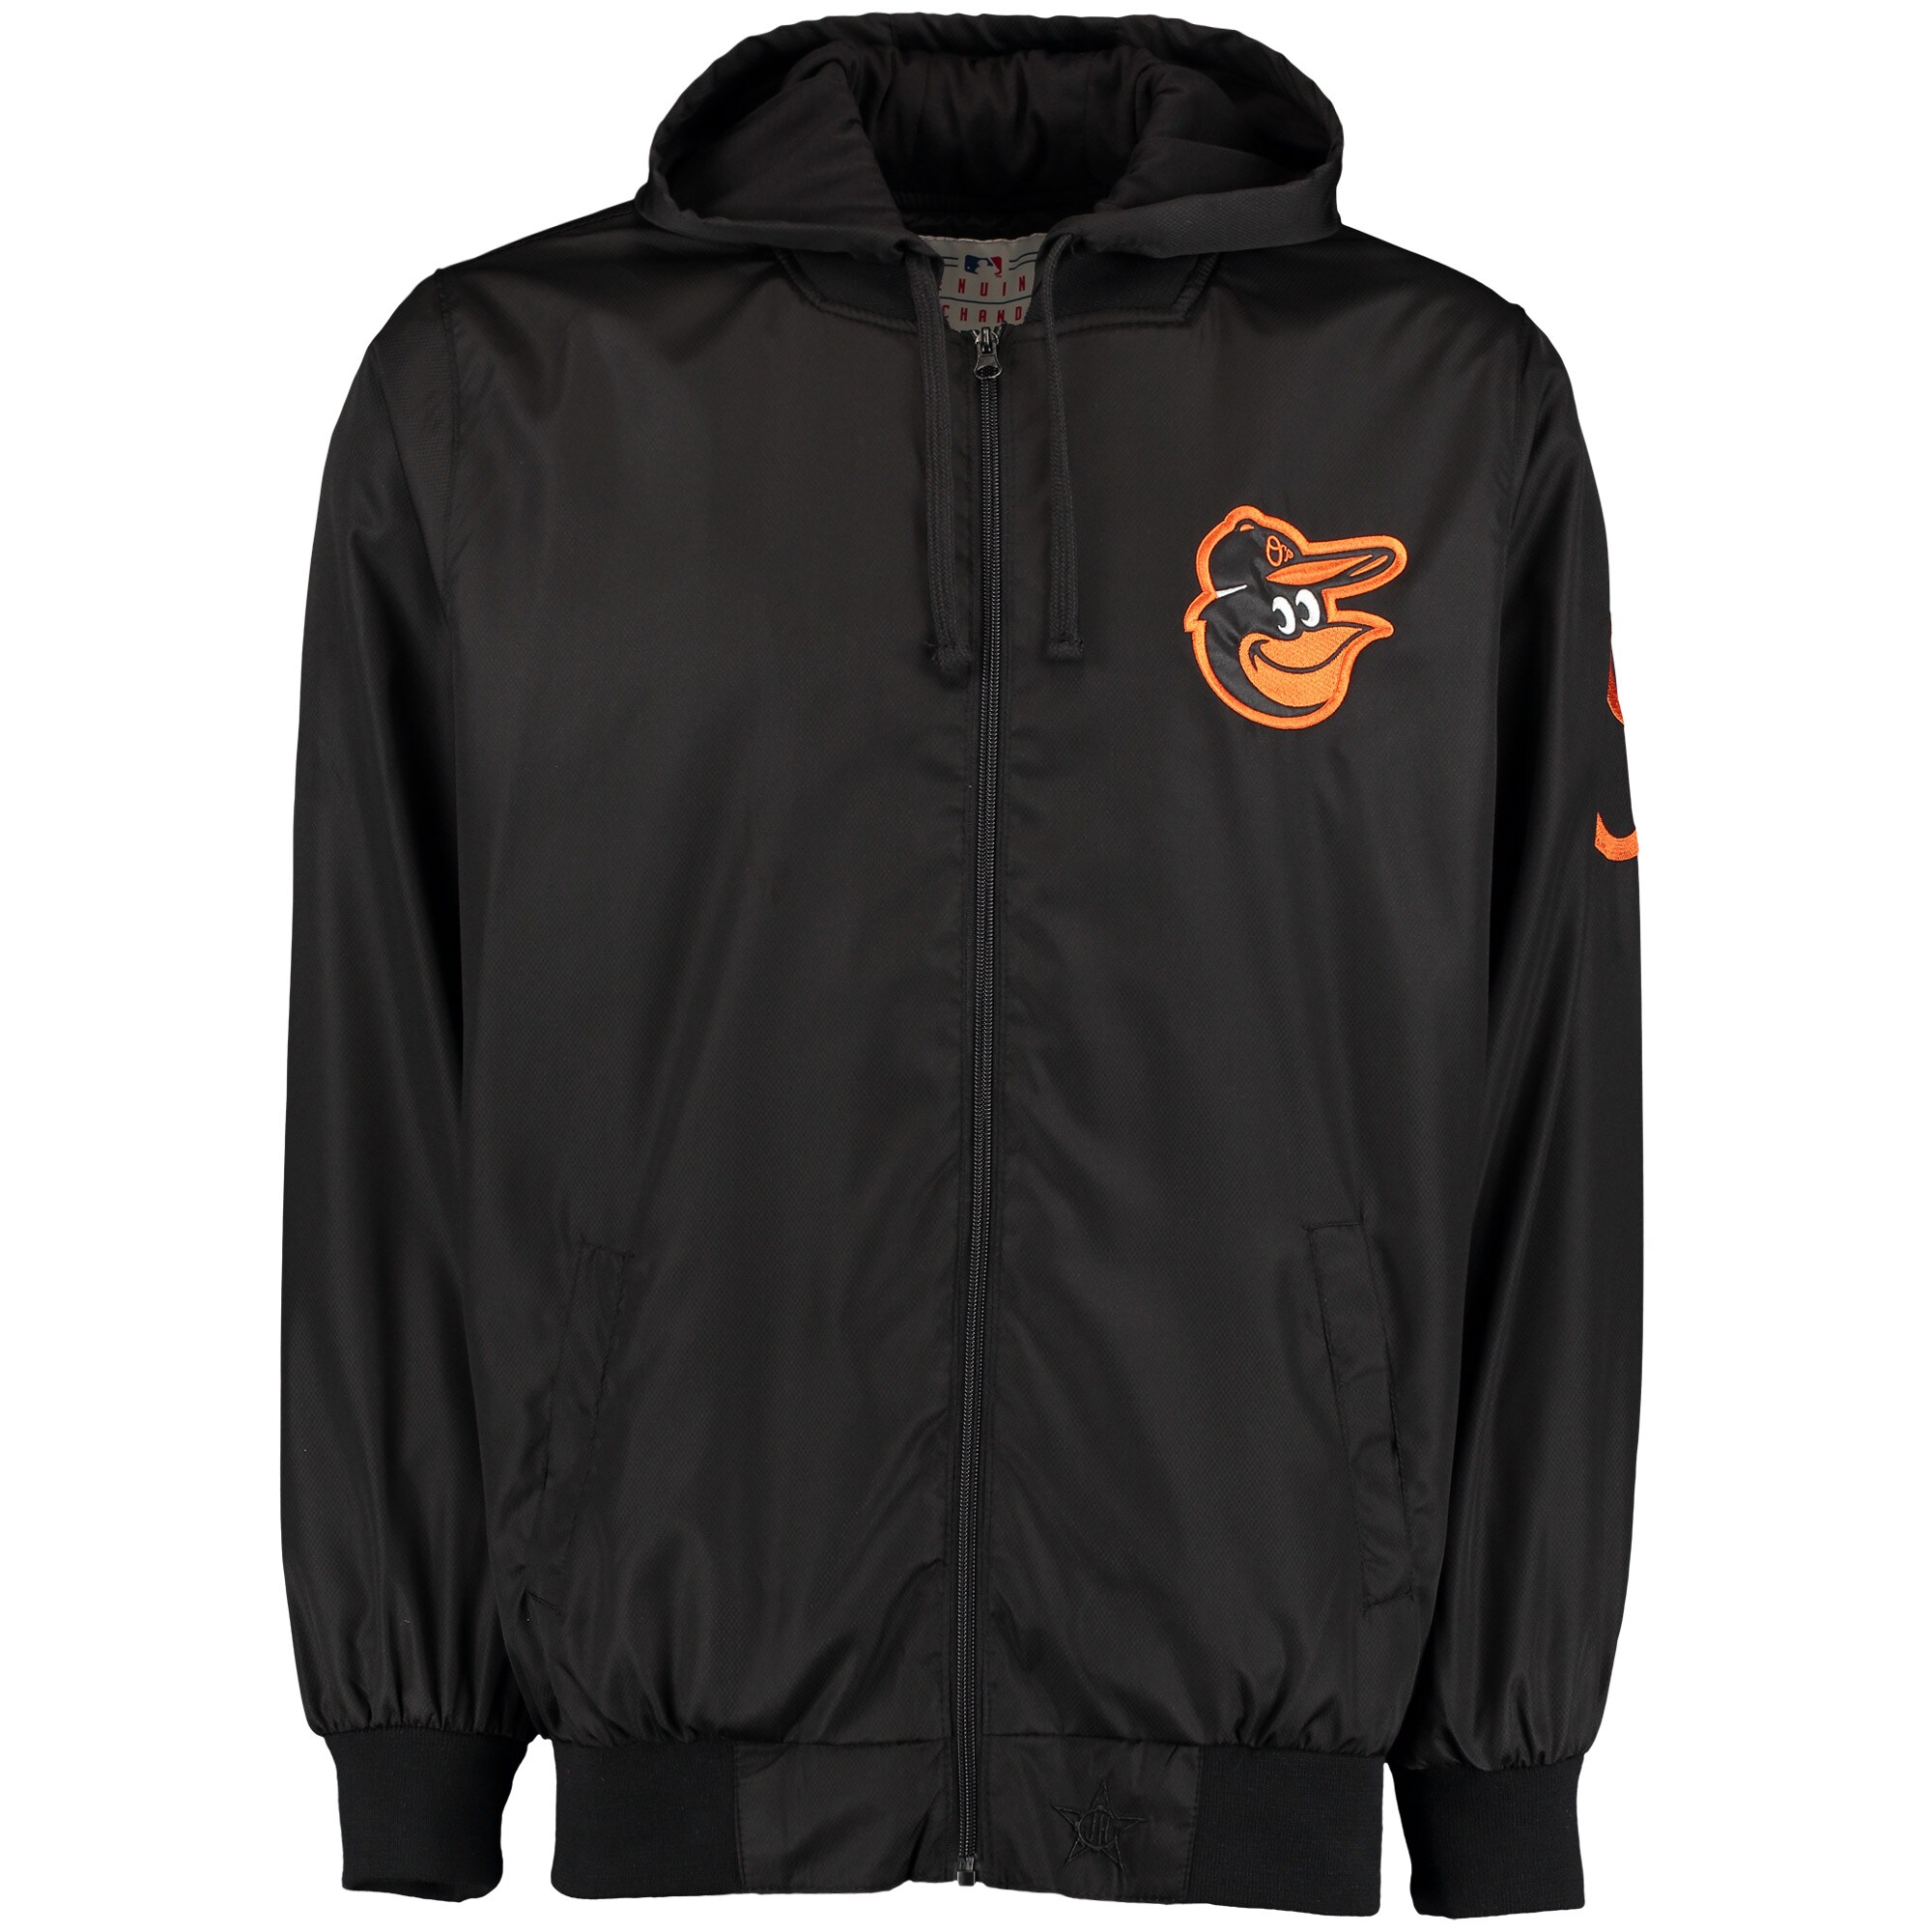 Baltimore Orioles JH Design Nylon Mesh Lined Hooded Jacket - Black